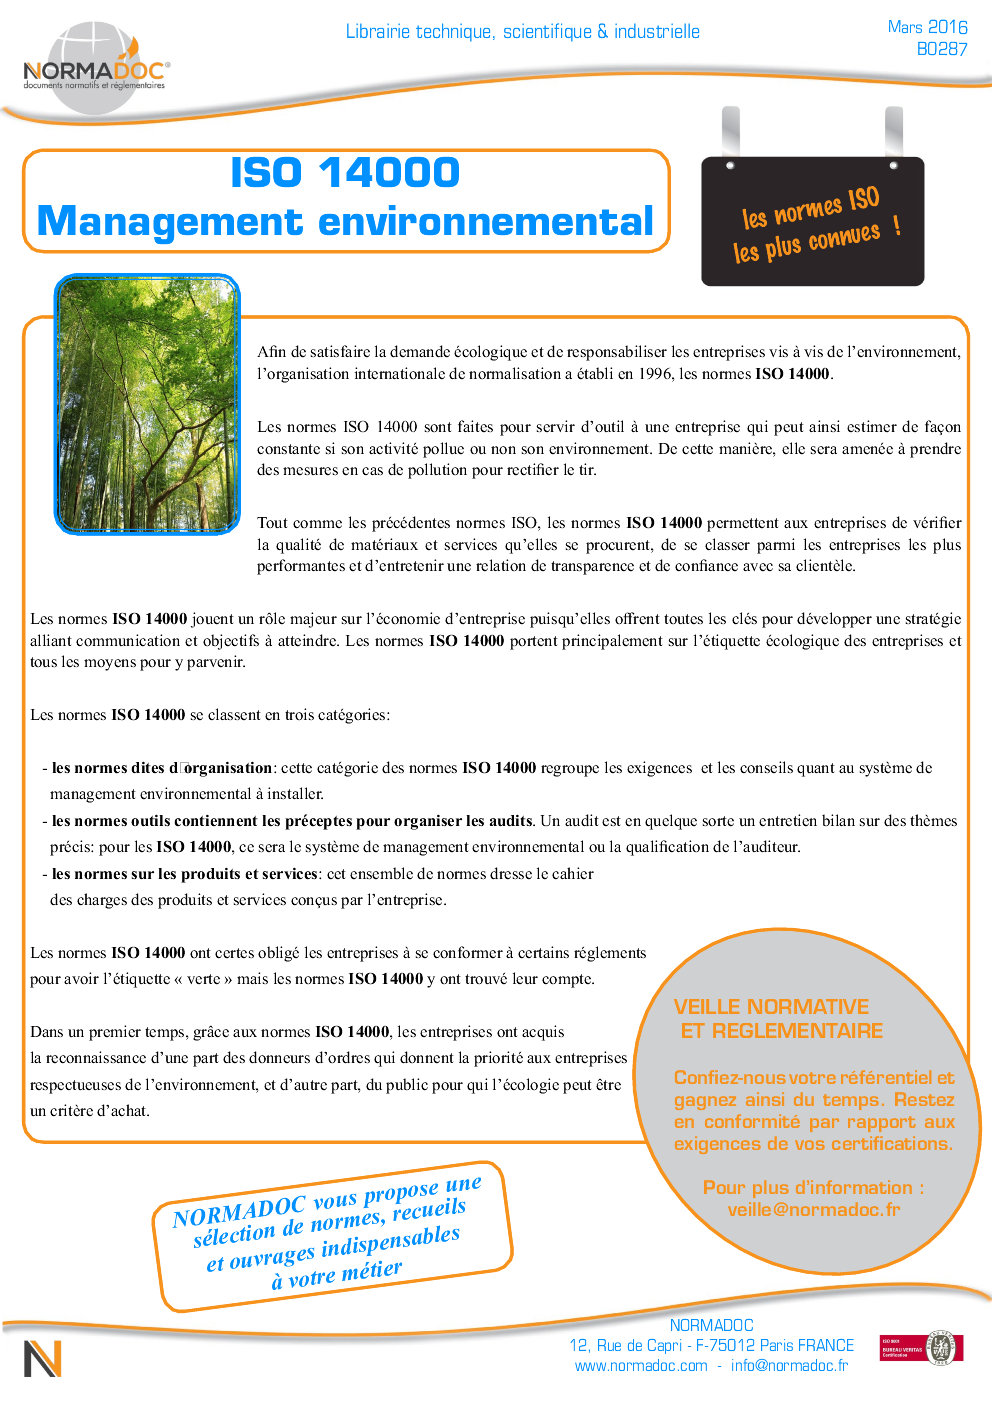 ISO 14000 - Environmental management